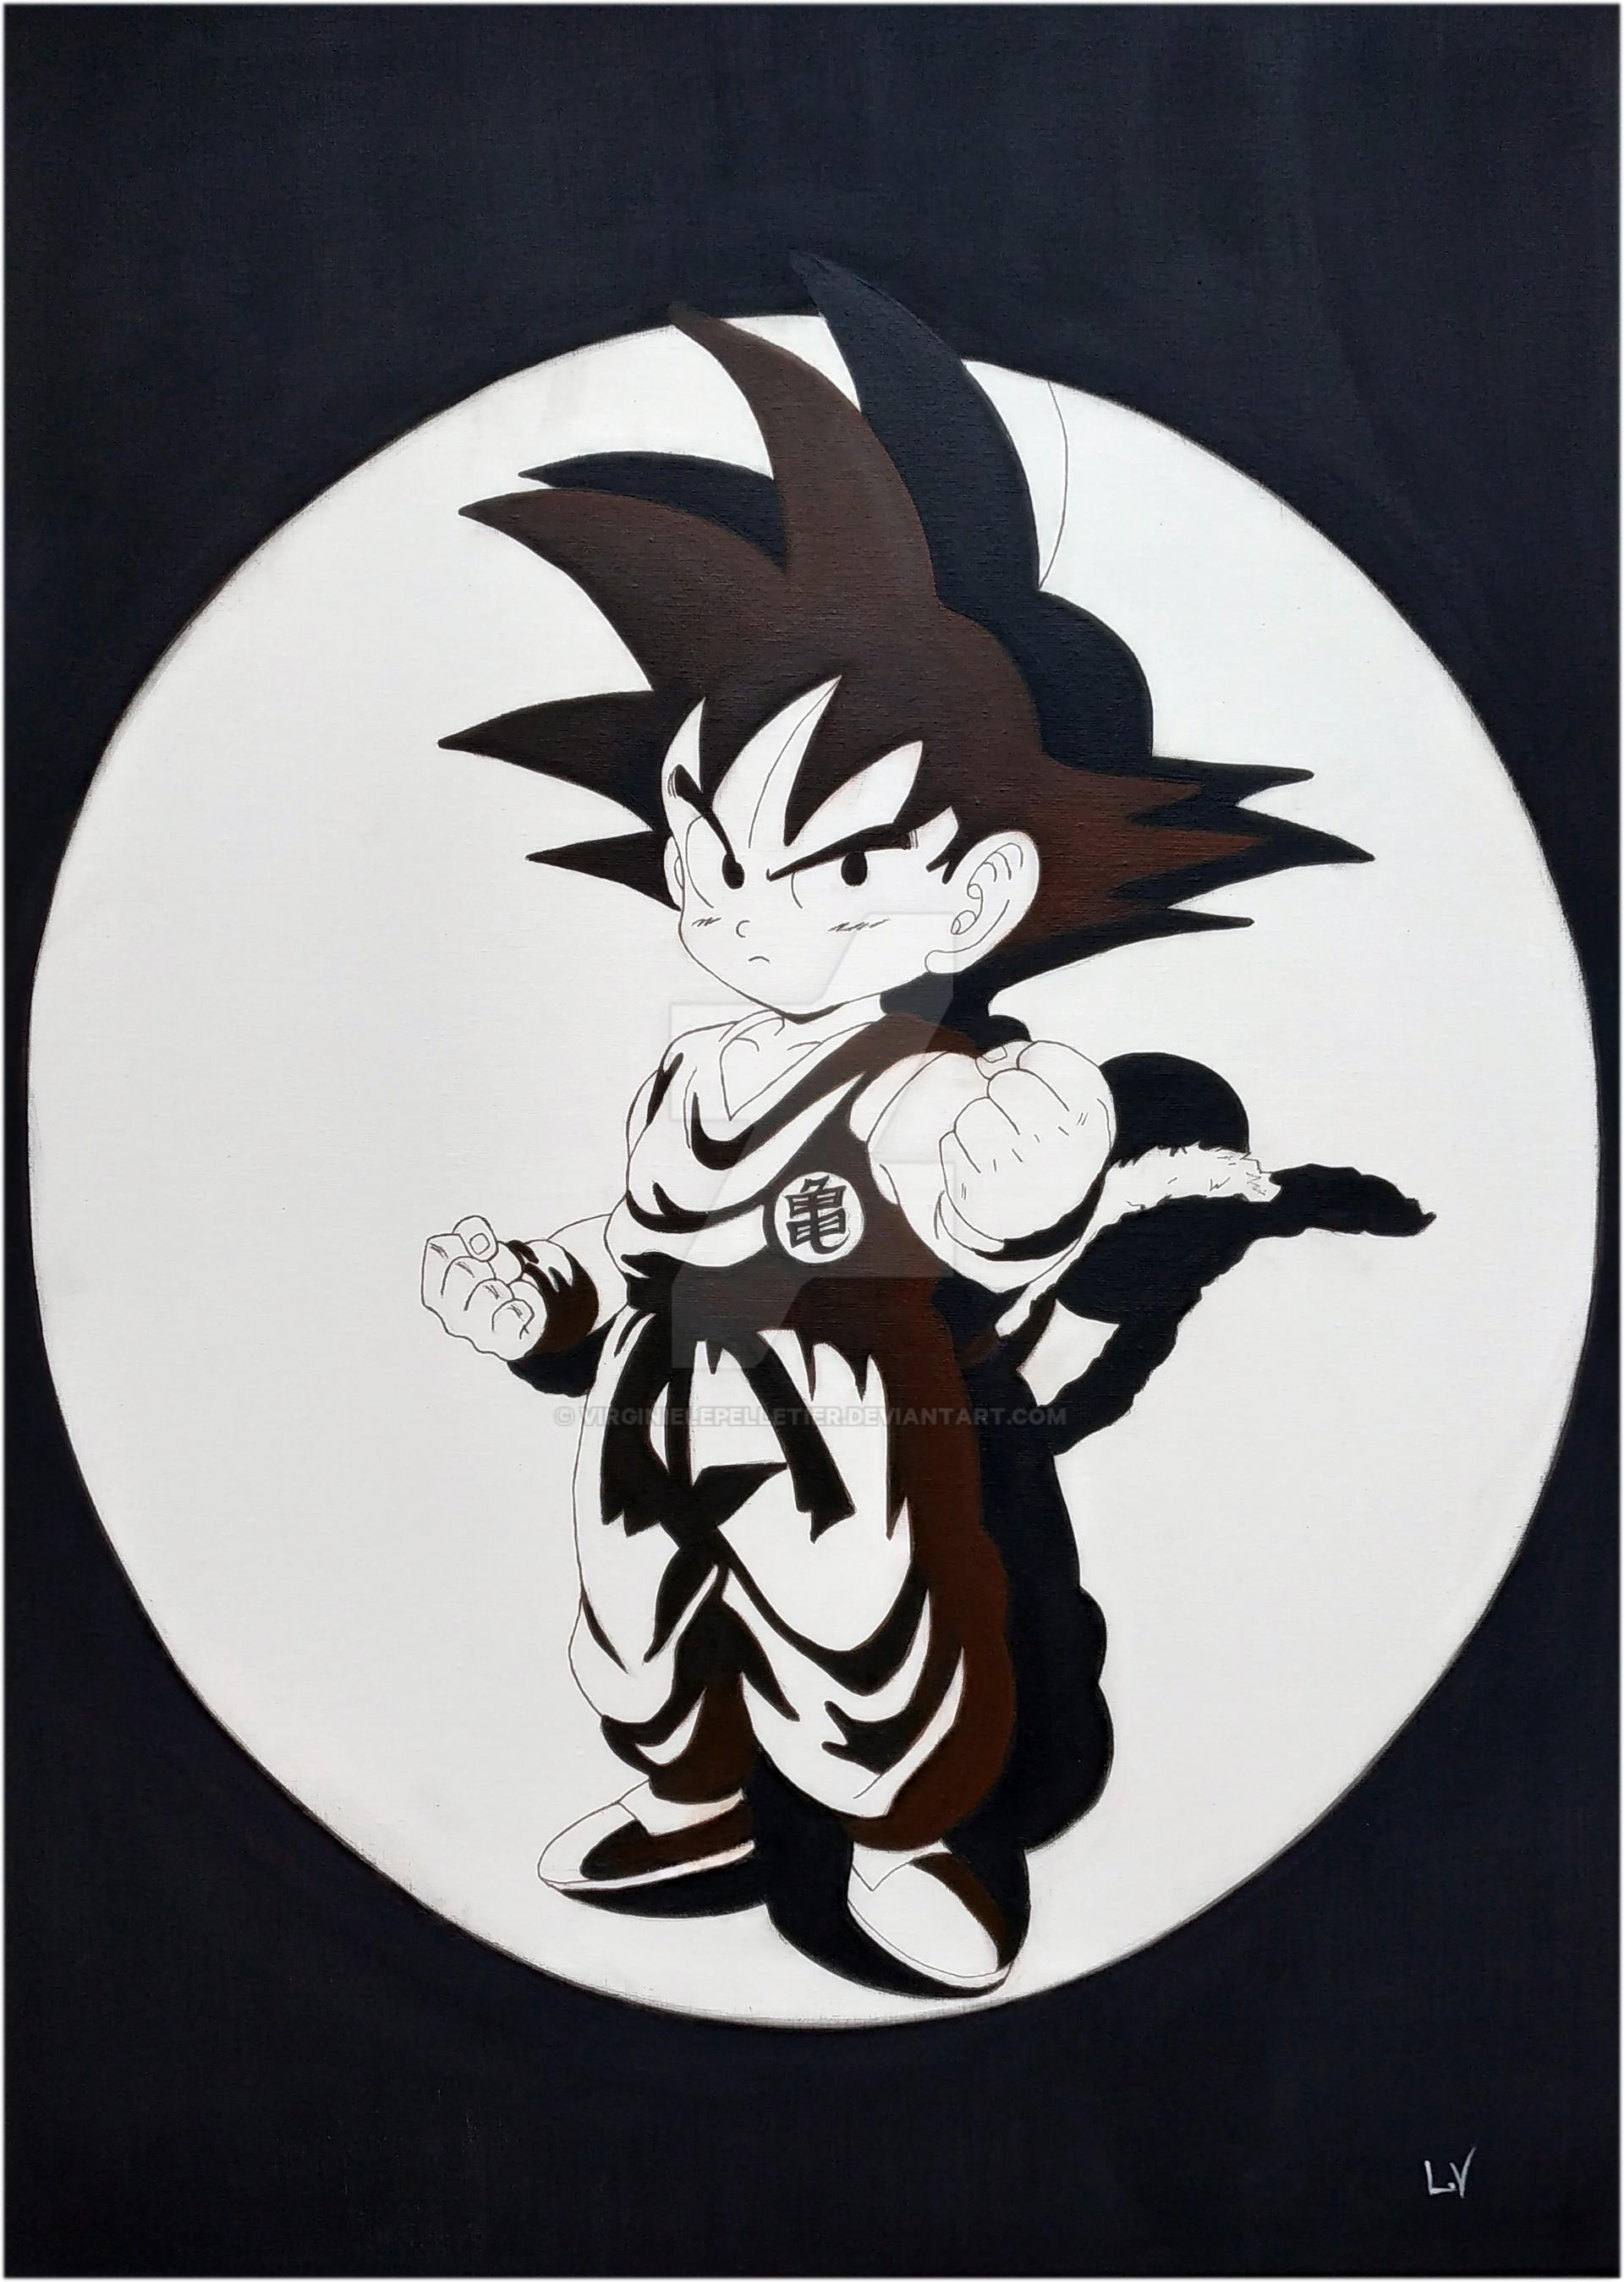 Goku Noir Et Blanc By Virginielepelletier On Deviantart